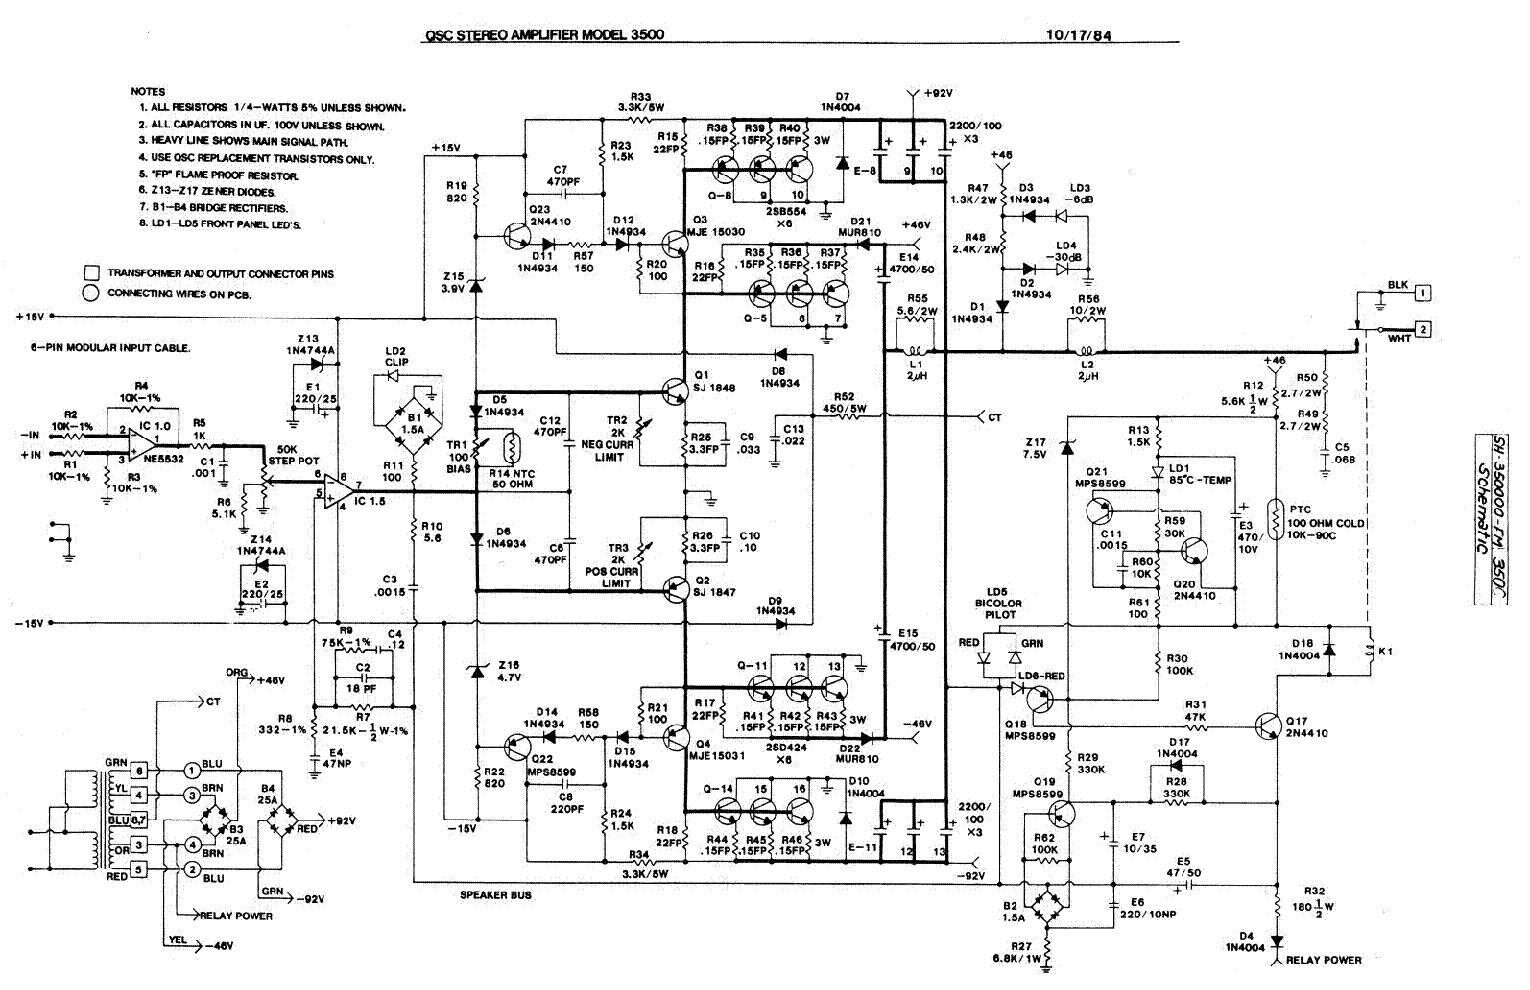 Qsc 3500 Service Manual Download Schematics Eeprom Repair Info Can Bus Schematic Free Wiring Diagram 1st Page